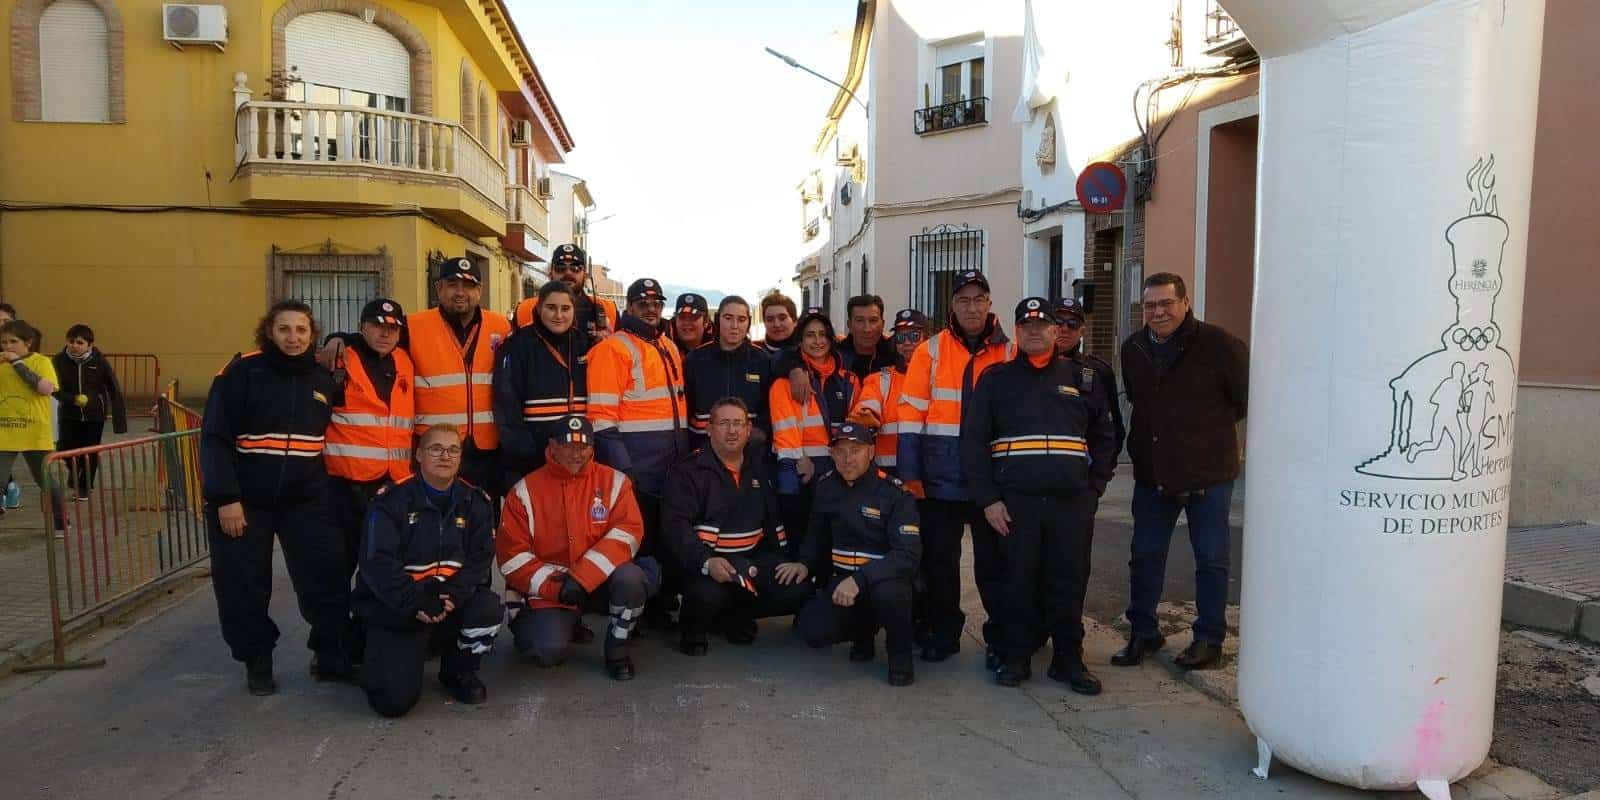 proteccion civil en carrera popular san anton 2019 - Protección civil colabora con el preventivo de la XVIII Carrera Popular de San Antón